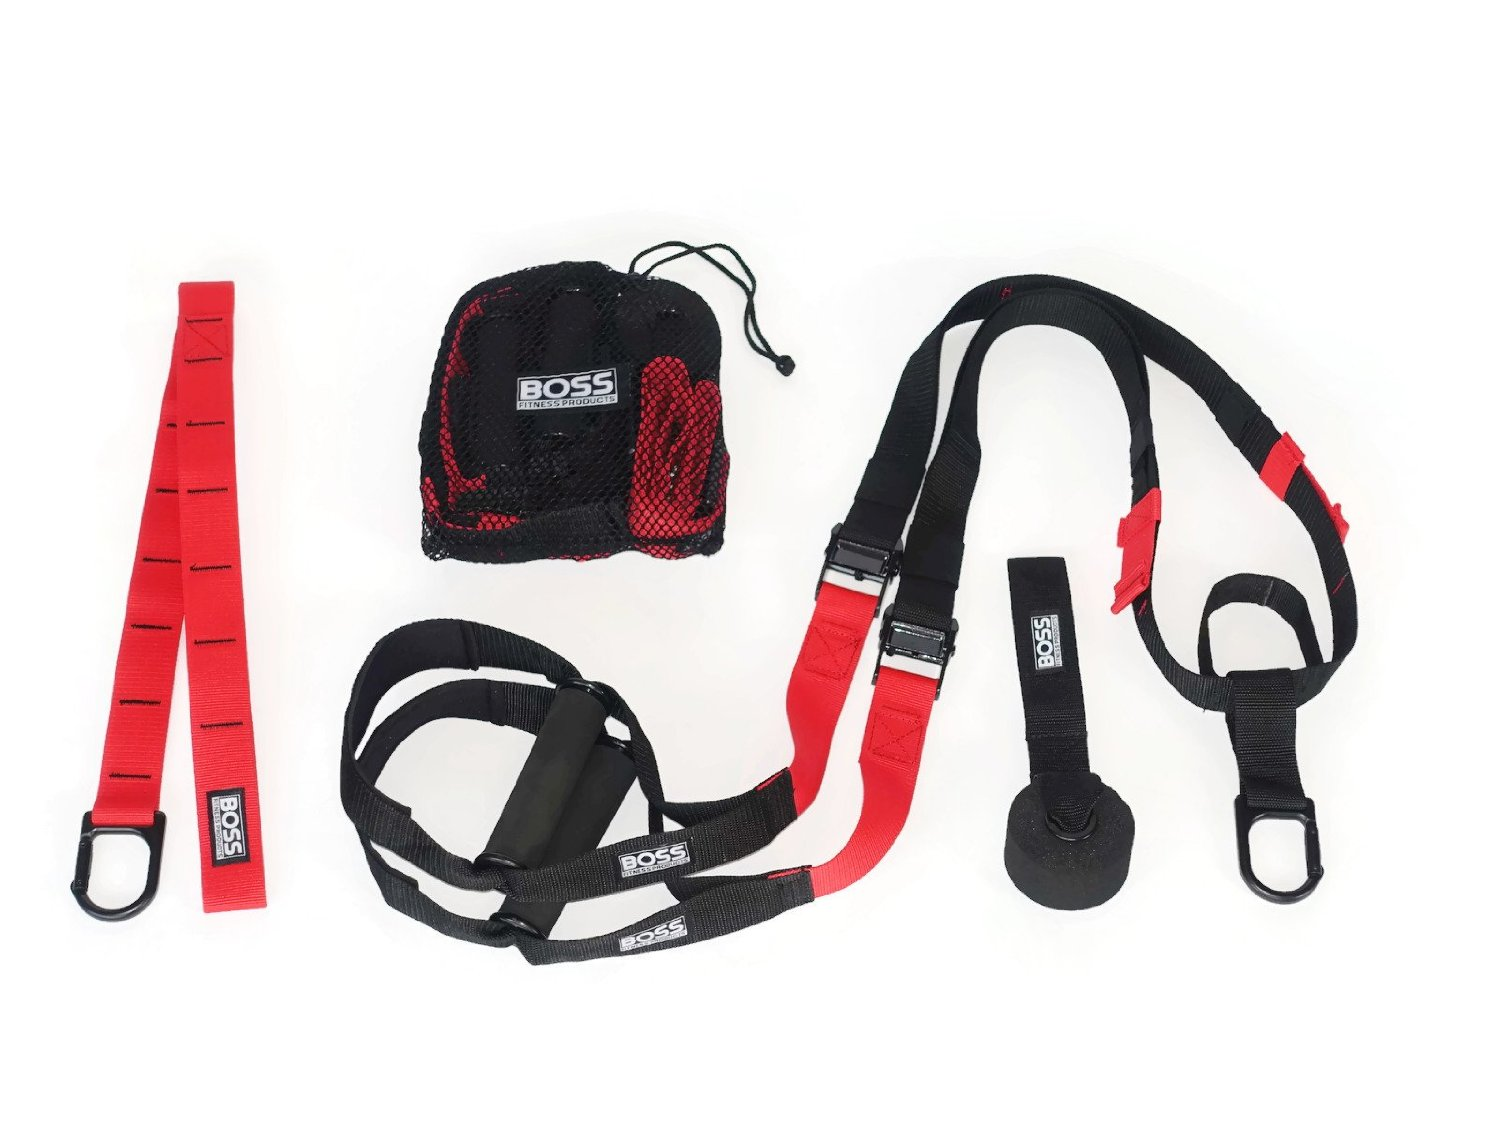 Boss Fitness Products - Suspension Fitness Trainer